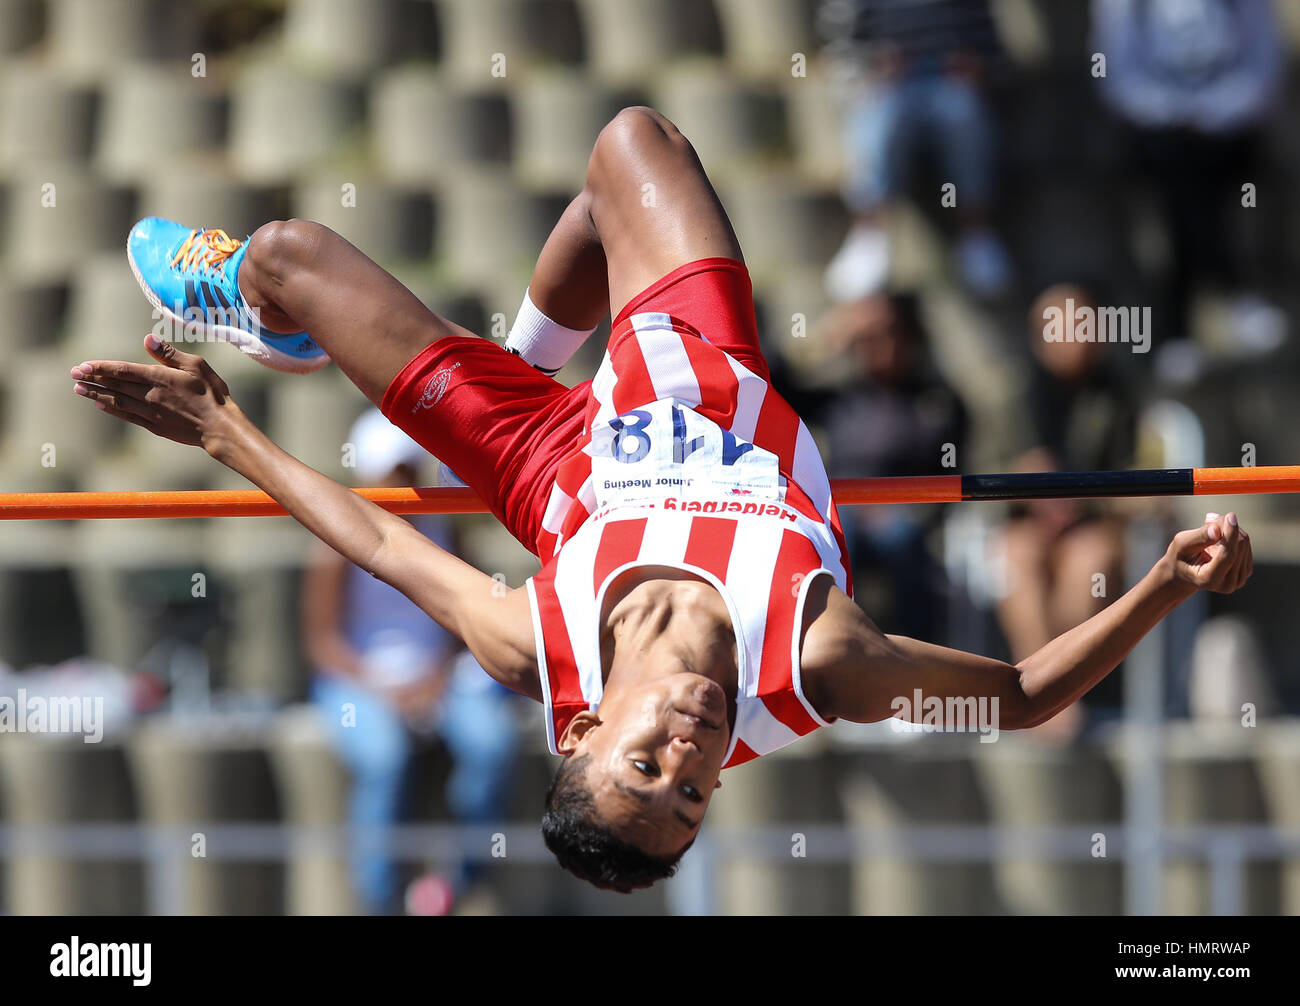 Local track and field athletics meeting in Parow, Cape Town, South Africa Stock Photo